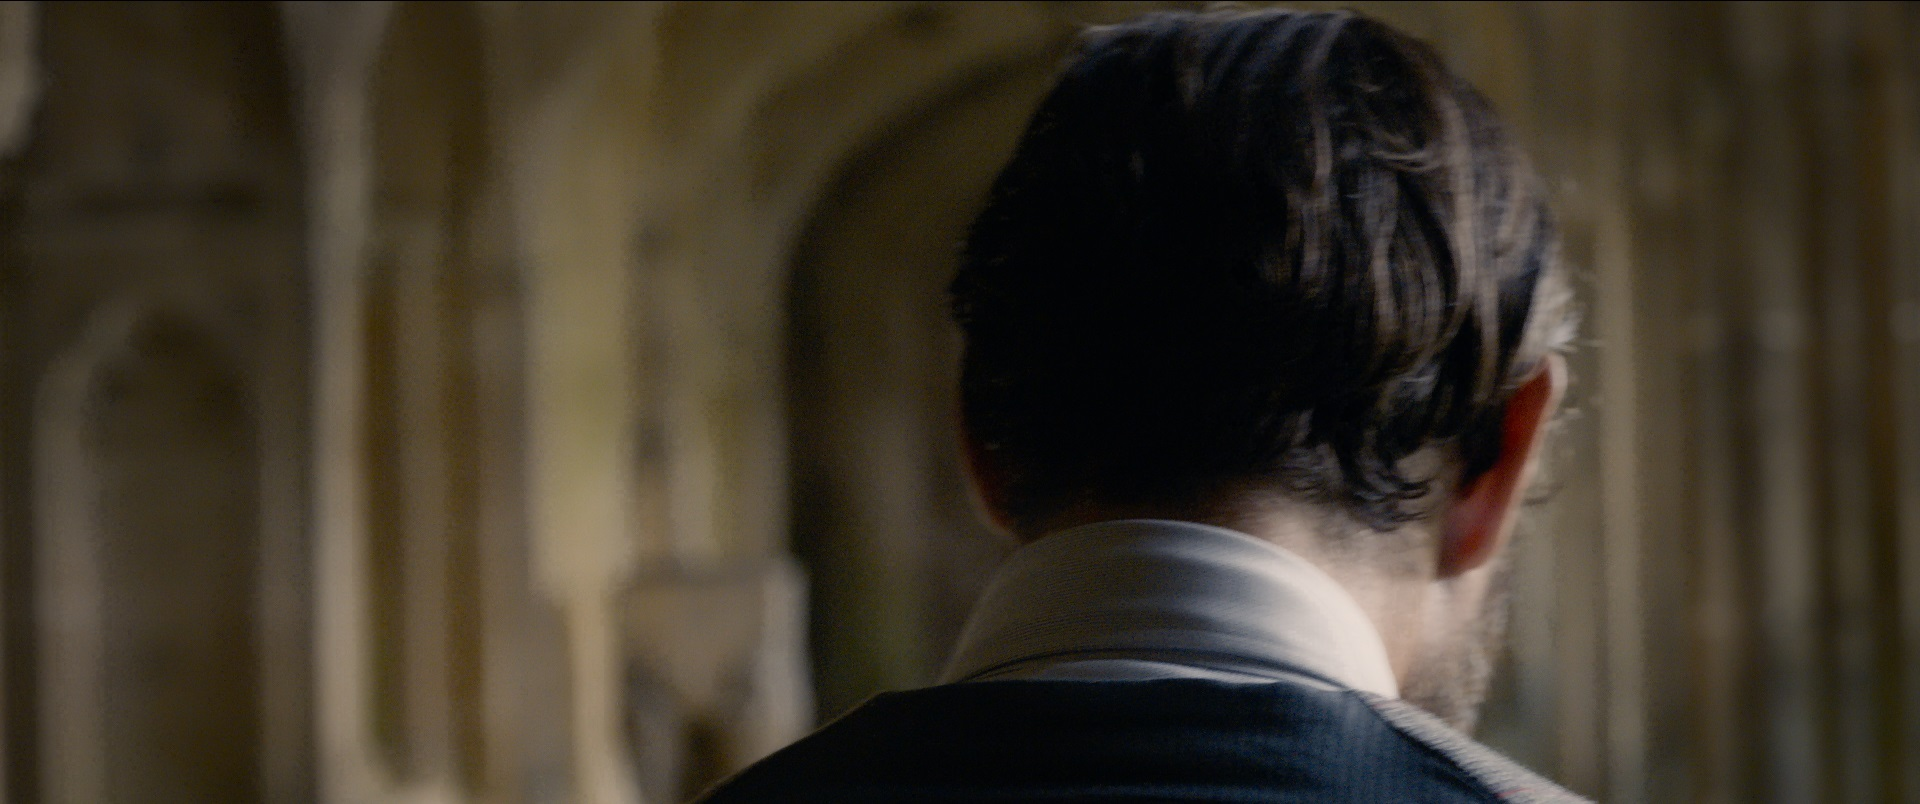 Potterish.com [Year 18] :: Harry Potter, The Ickabog, Fantastic Beasts, JK Rowling, Daniel, Emma & Rupert 11 scenes cut from Fantastic Beasts: Crimes of Grindelwald